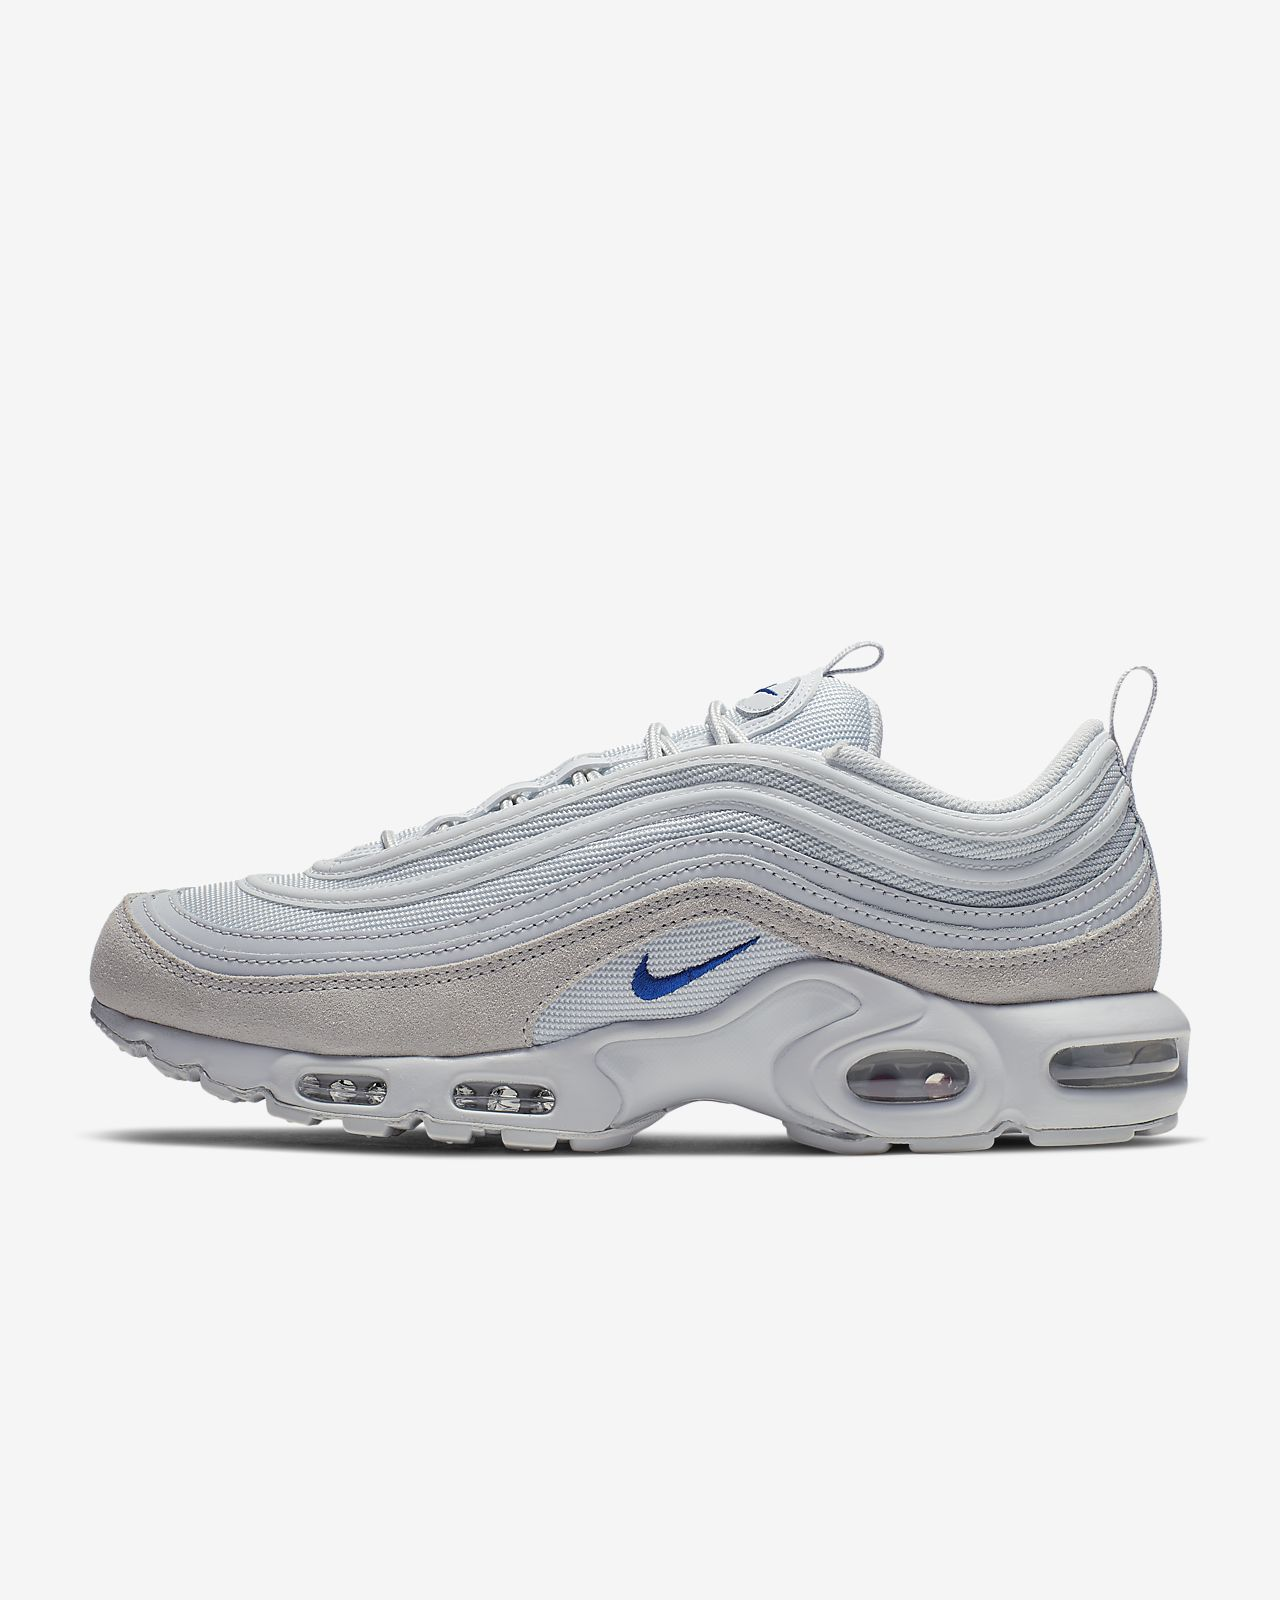 df43be85ba7 Nike Air Max Plus 97 Men s Shoe. Nike.com GB